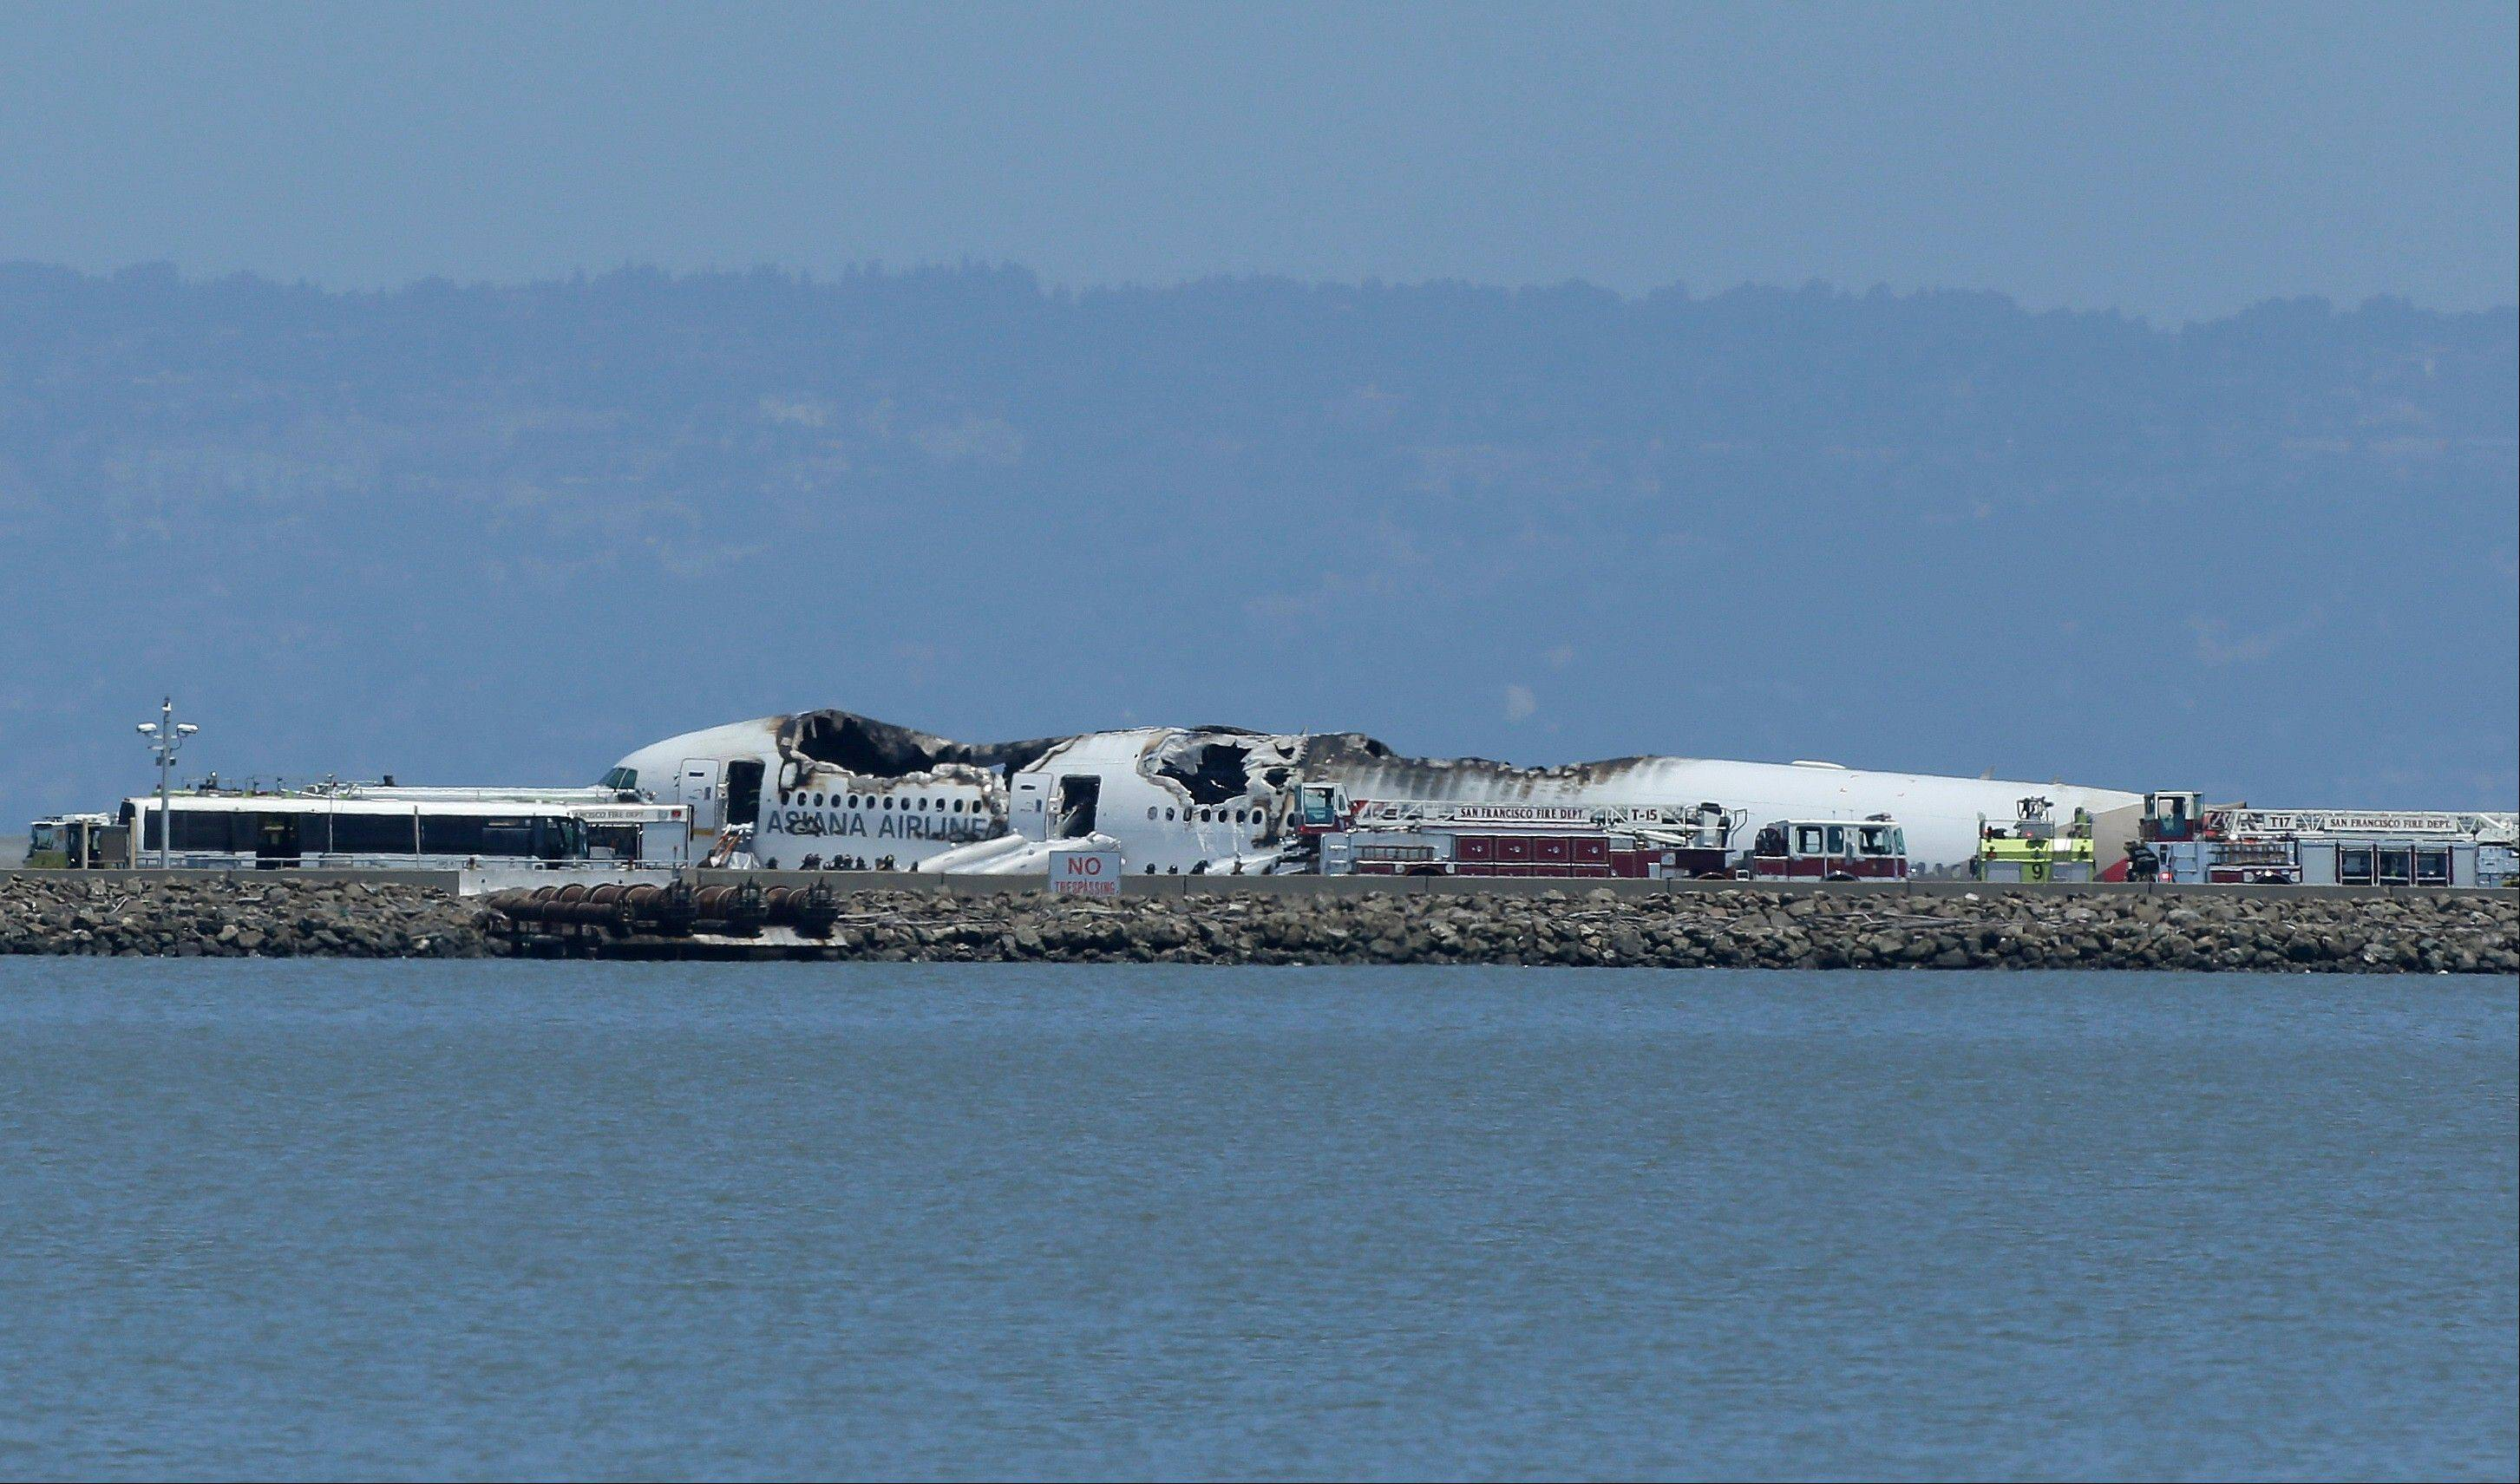 The evacuation of Asiana Flight 214, which crashed at San Francisco International Airport Saturday, began badly. Even before the mangled jetliner began filling with smoke, two evacuation slides on the doors inflated inside the cabin instead of outside, pinning two flight attendants to the floor.